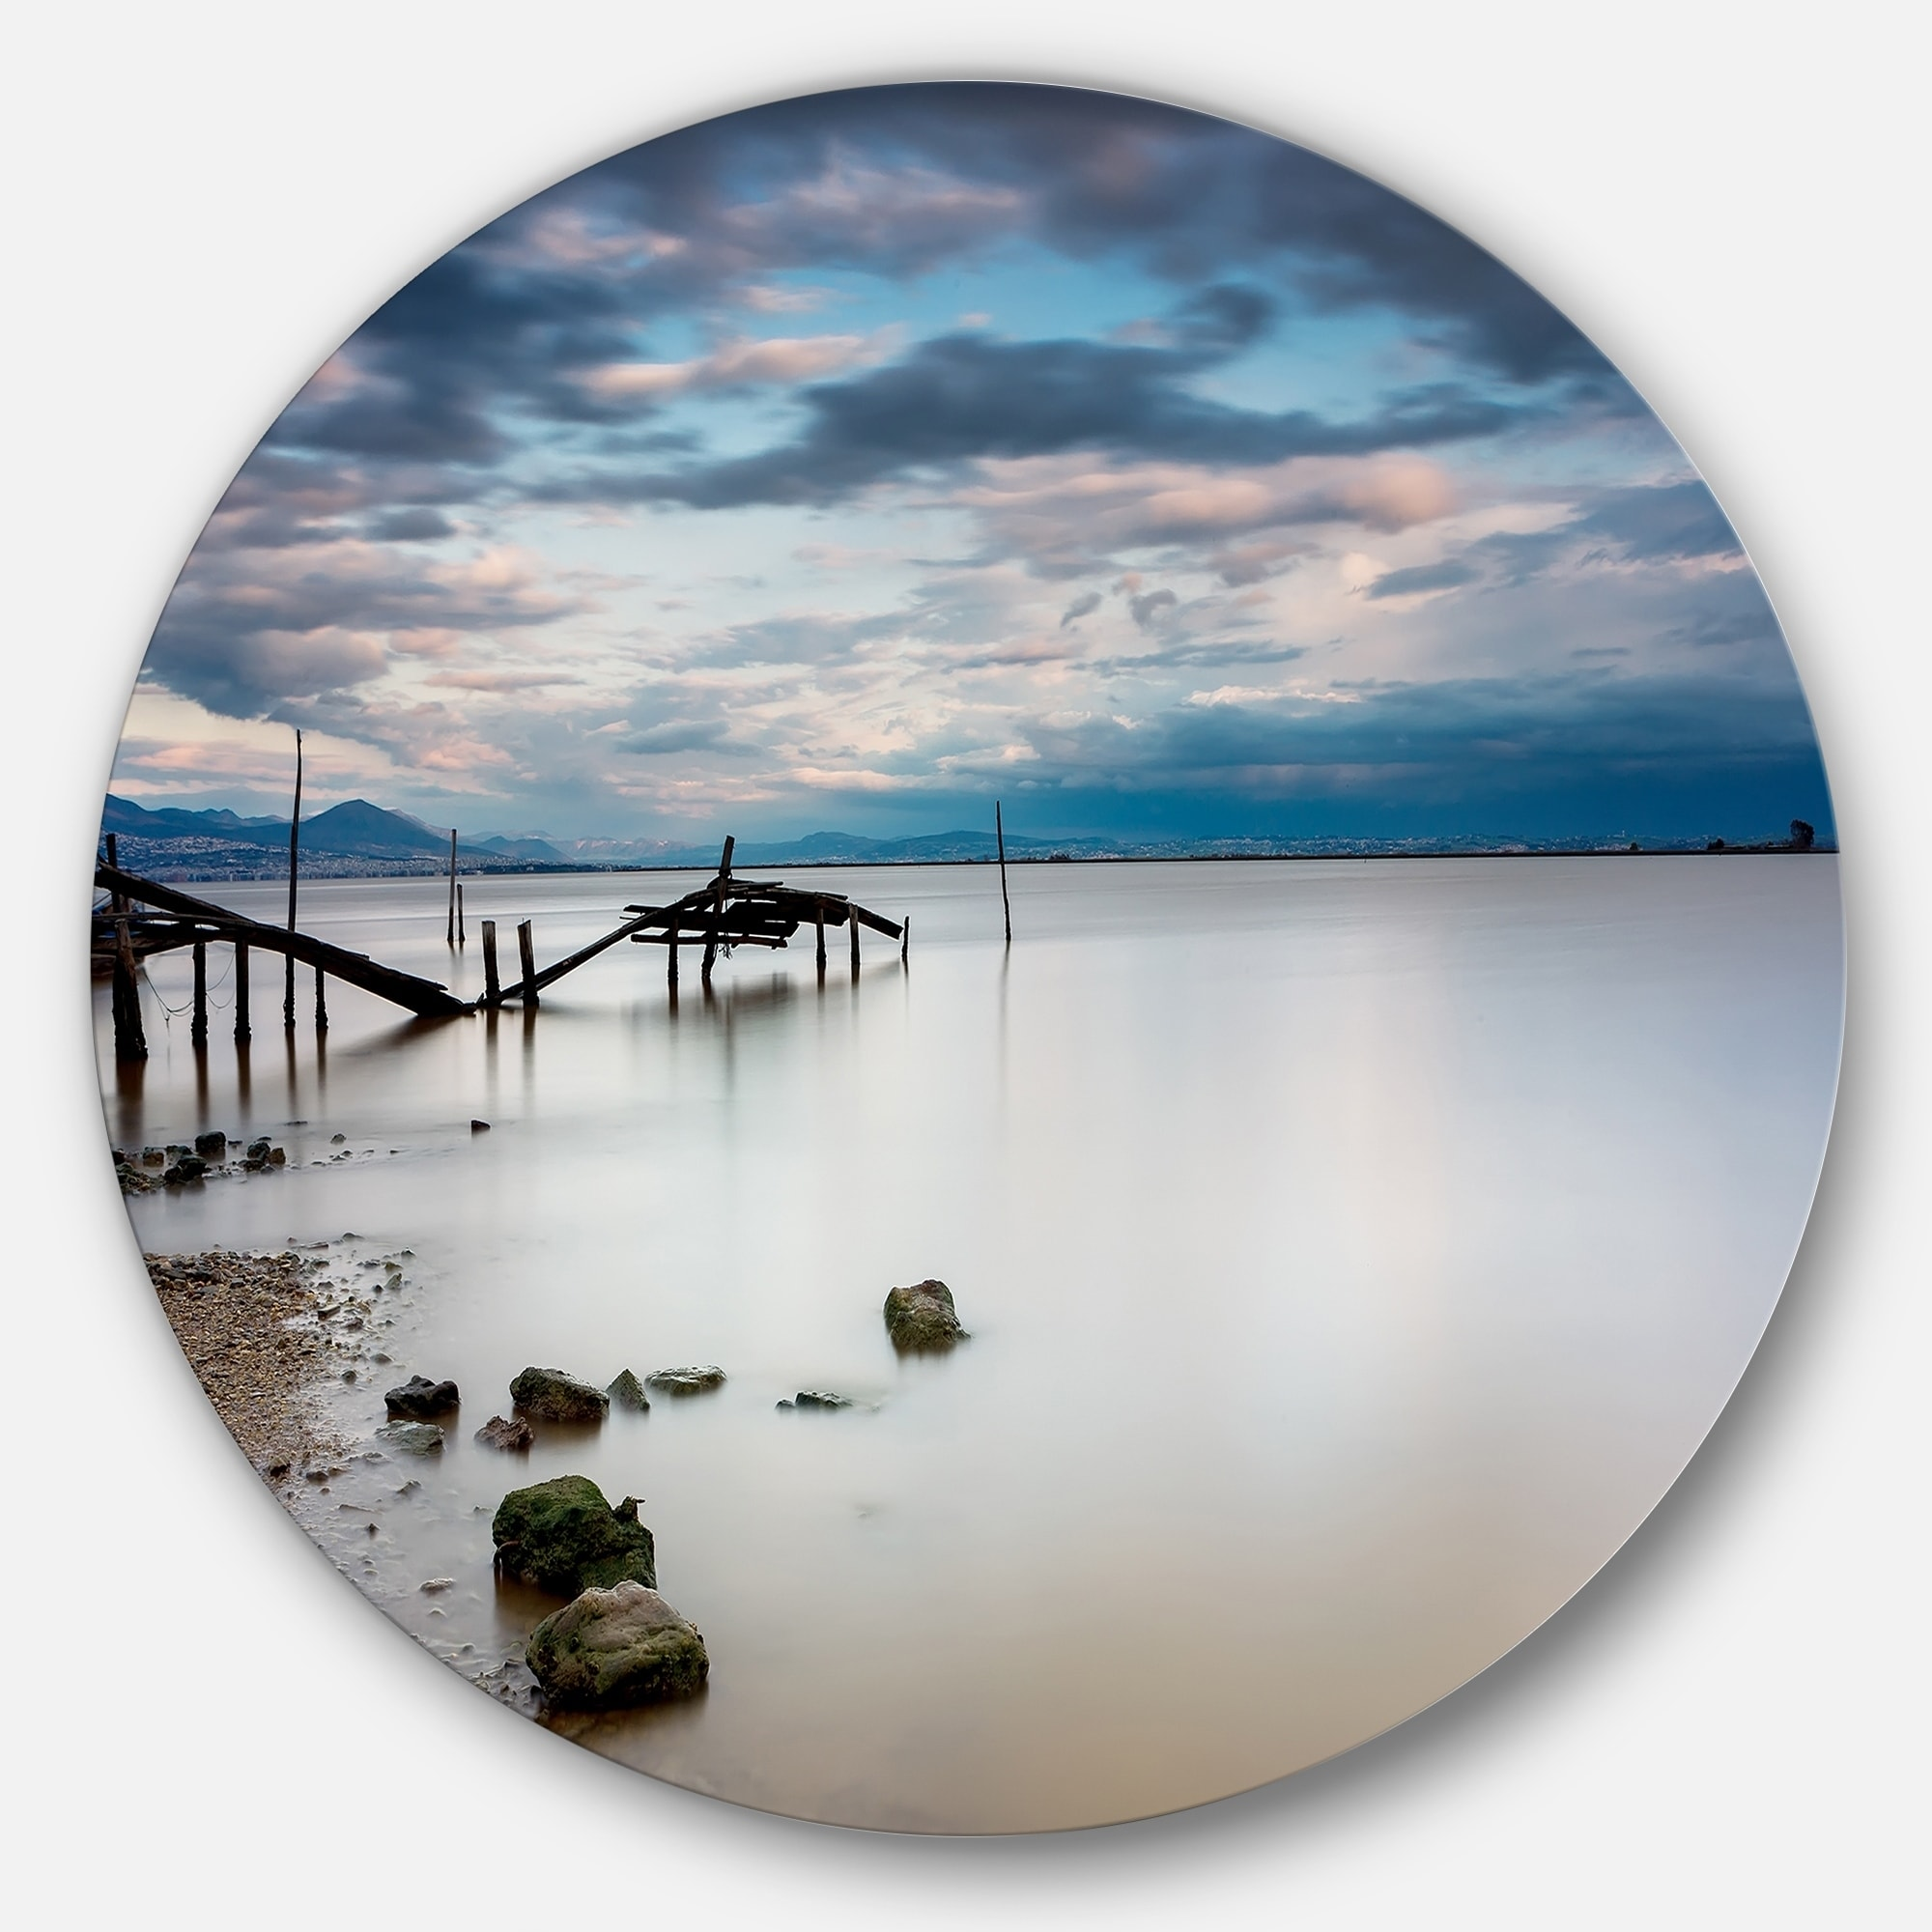 Designart Magic Sunrise With Old Wooden Pier Sea Pier And Bridge Circle Wall Art Overstock 14251990